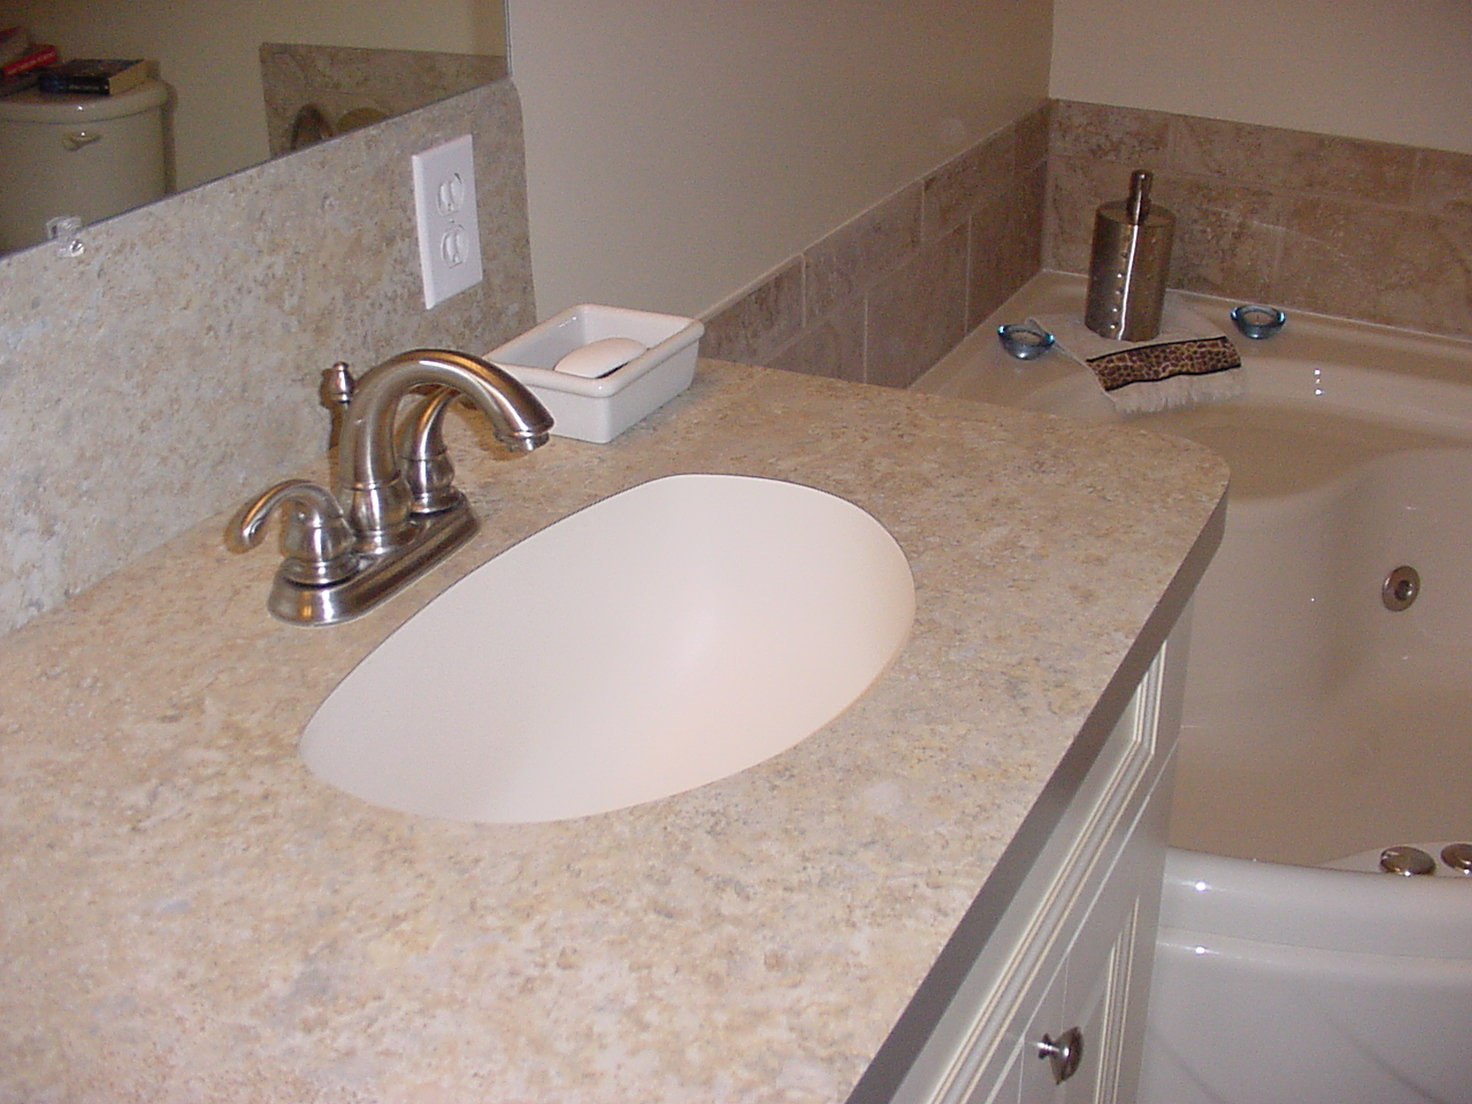 How To Install An Undermount Sink In A Laminate Countertop Undermount Sinks Delorie Countertop And Doors